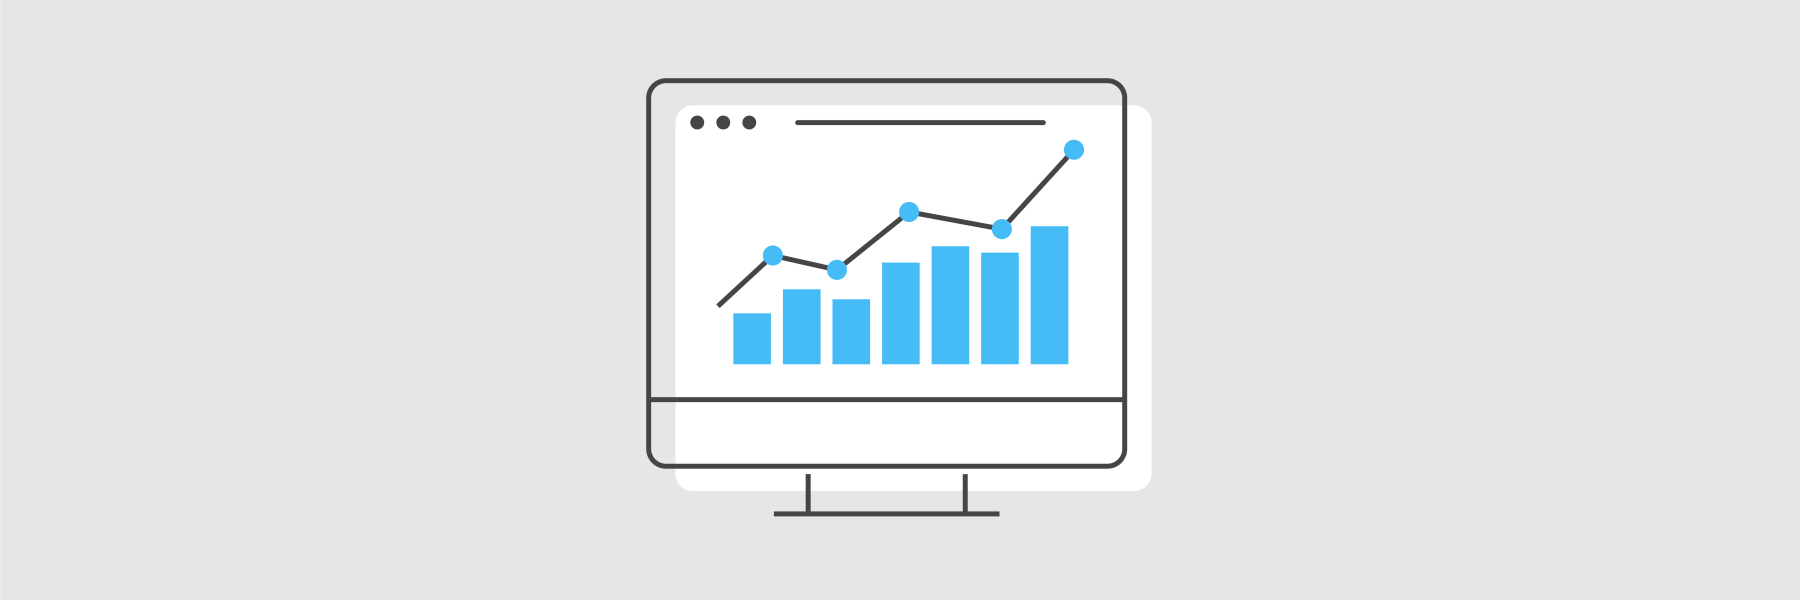 Digital Designs - desktop icon with increasing chart graphic